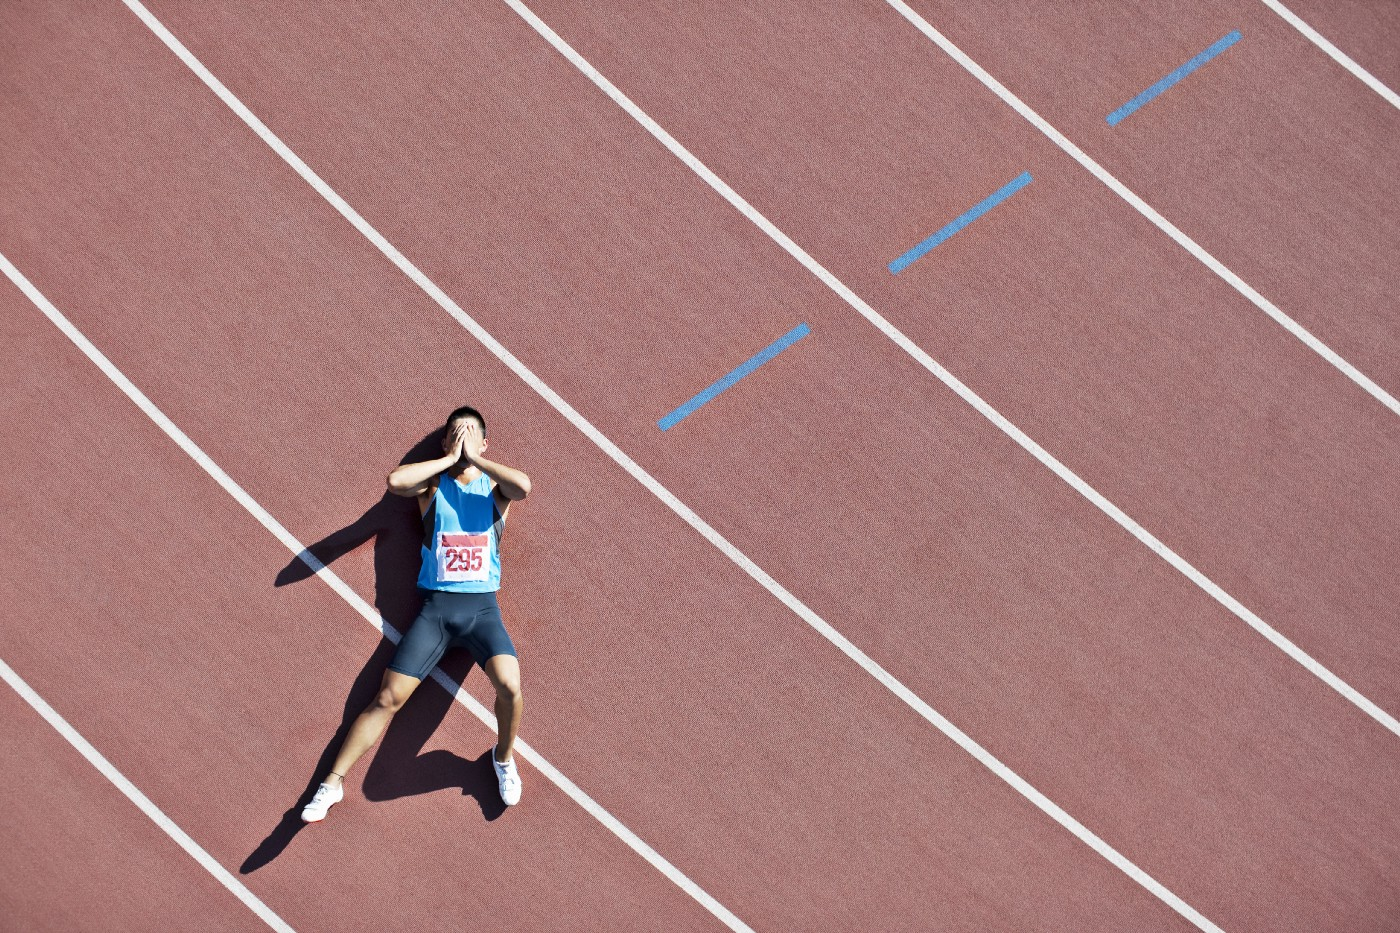 A tired runner lies down on a track.